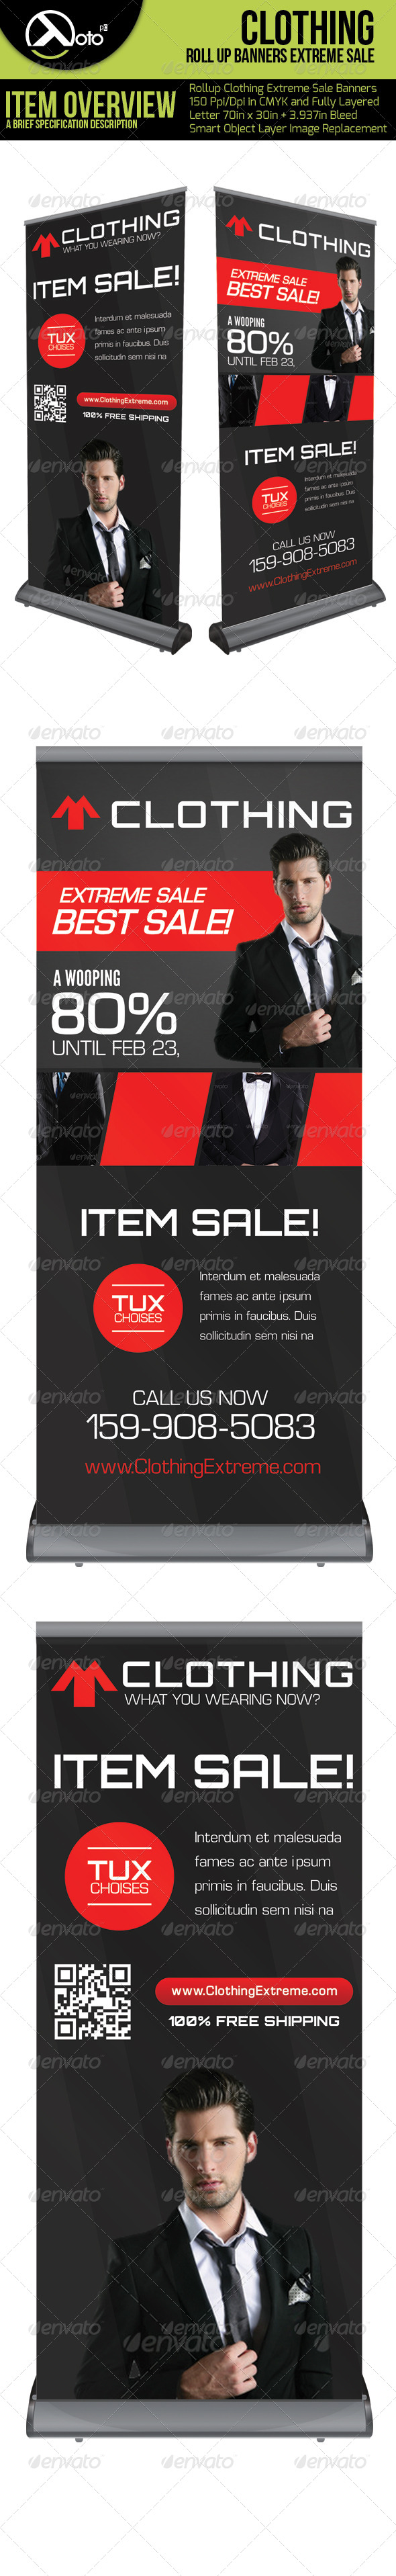 Clothing Extreme Sales Roll Up - Signage Print Templates